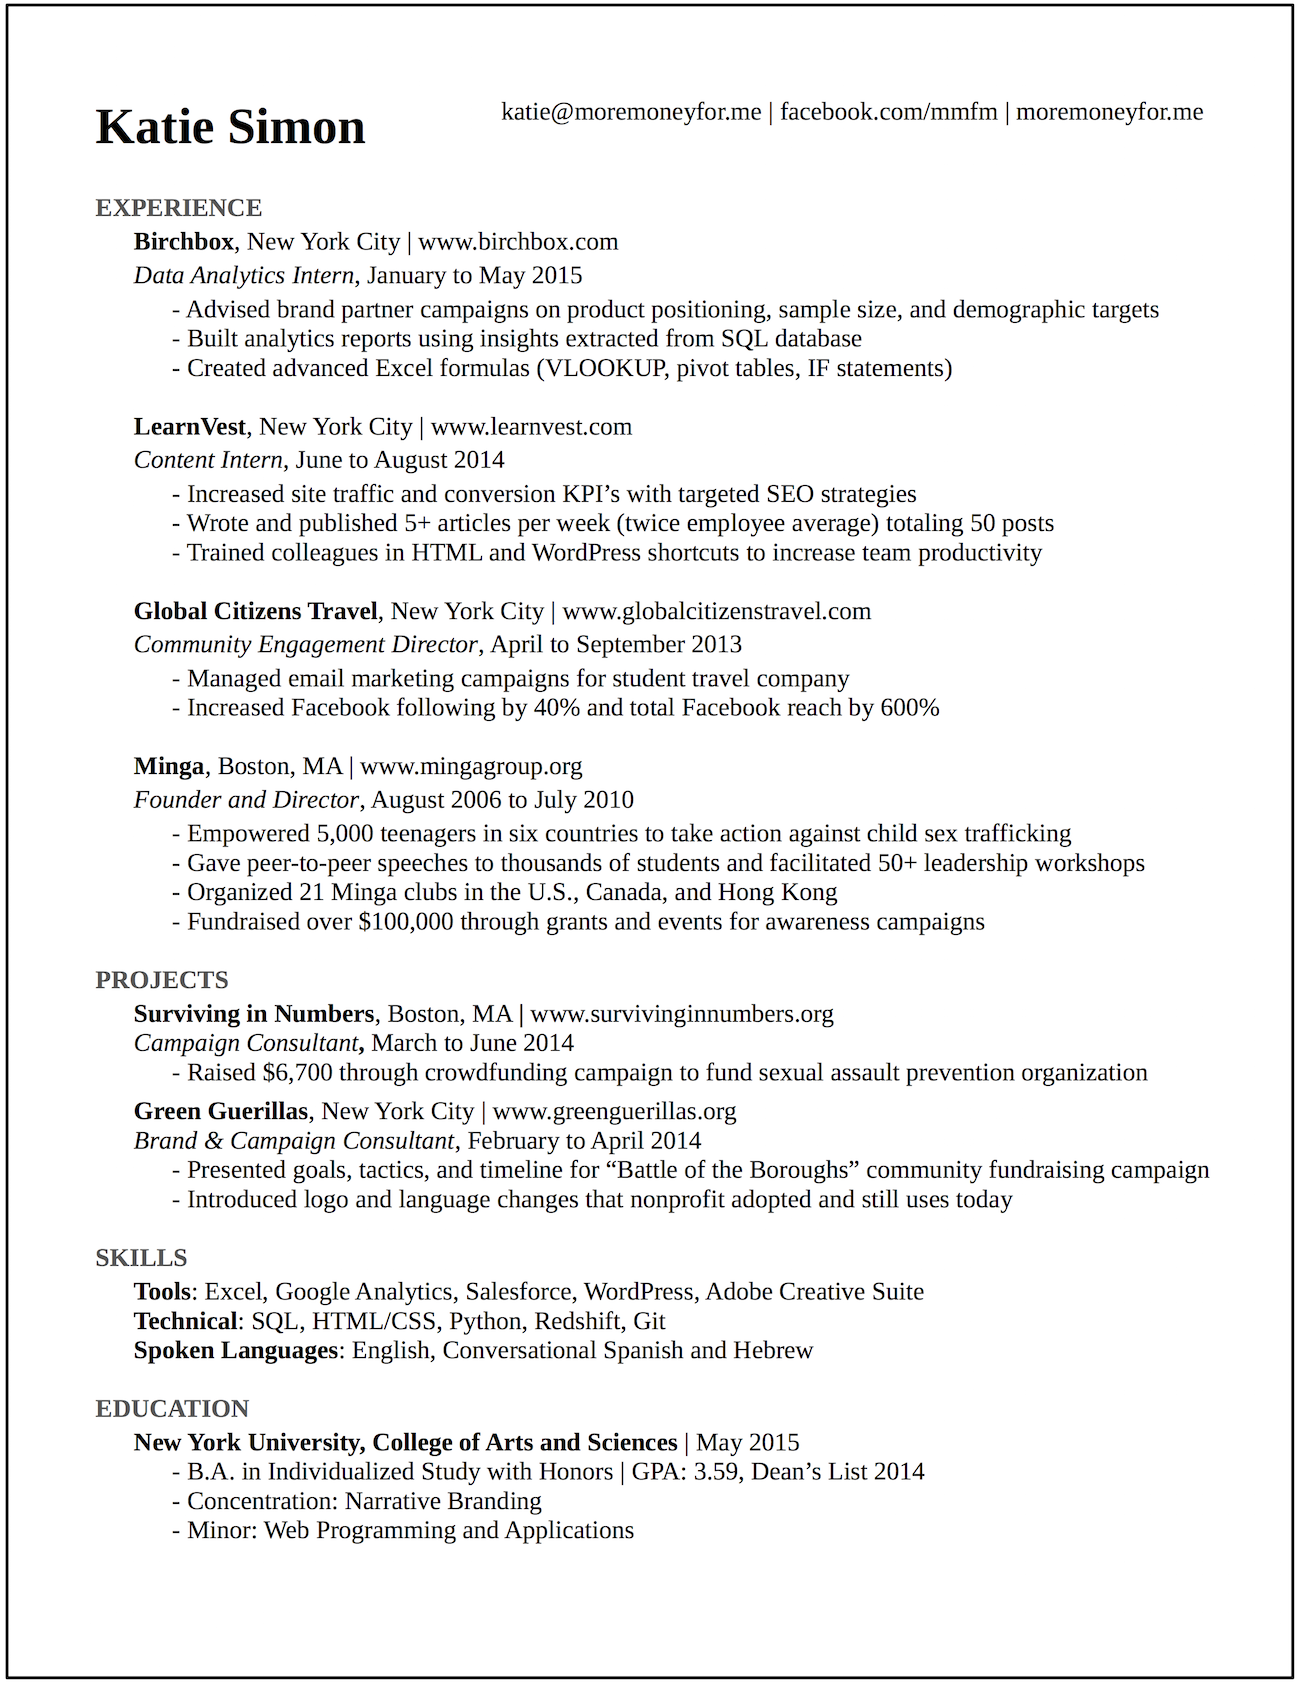 Buzzfeed Resume Templates This Résumé Landed Me Interviews At Google Buzzfeed And